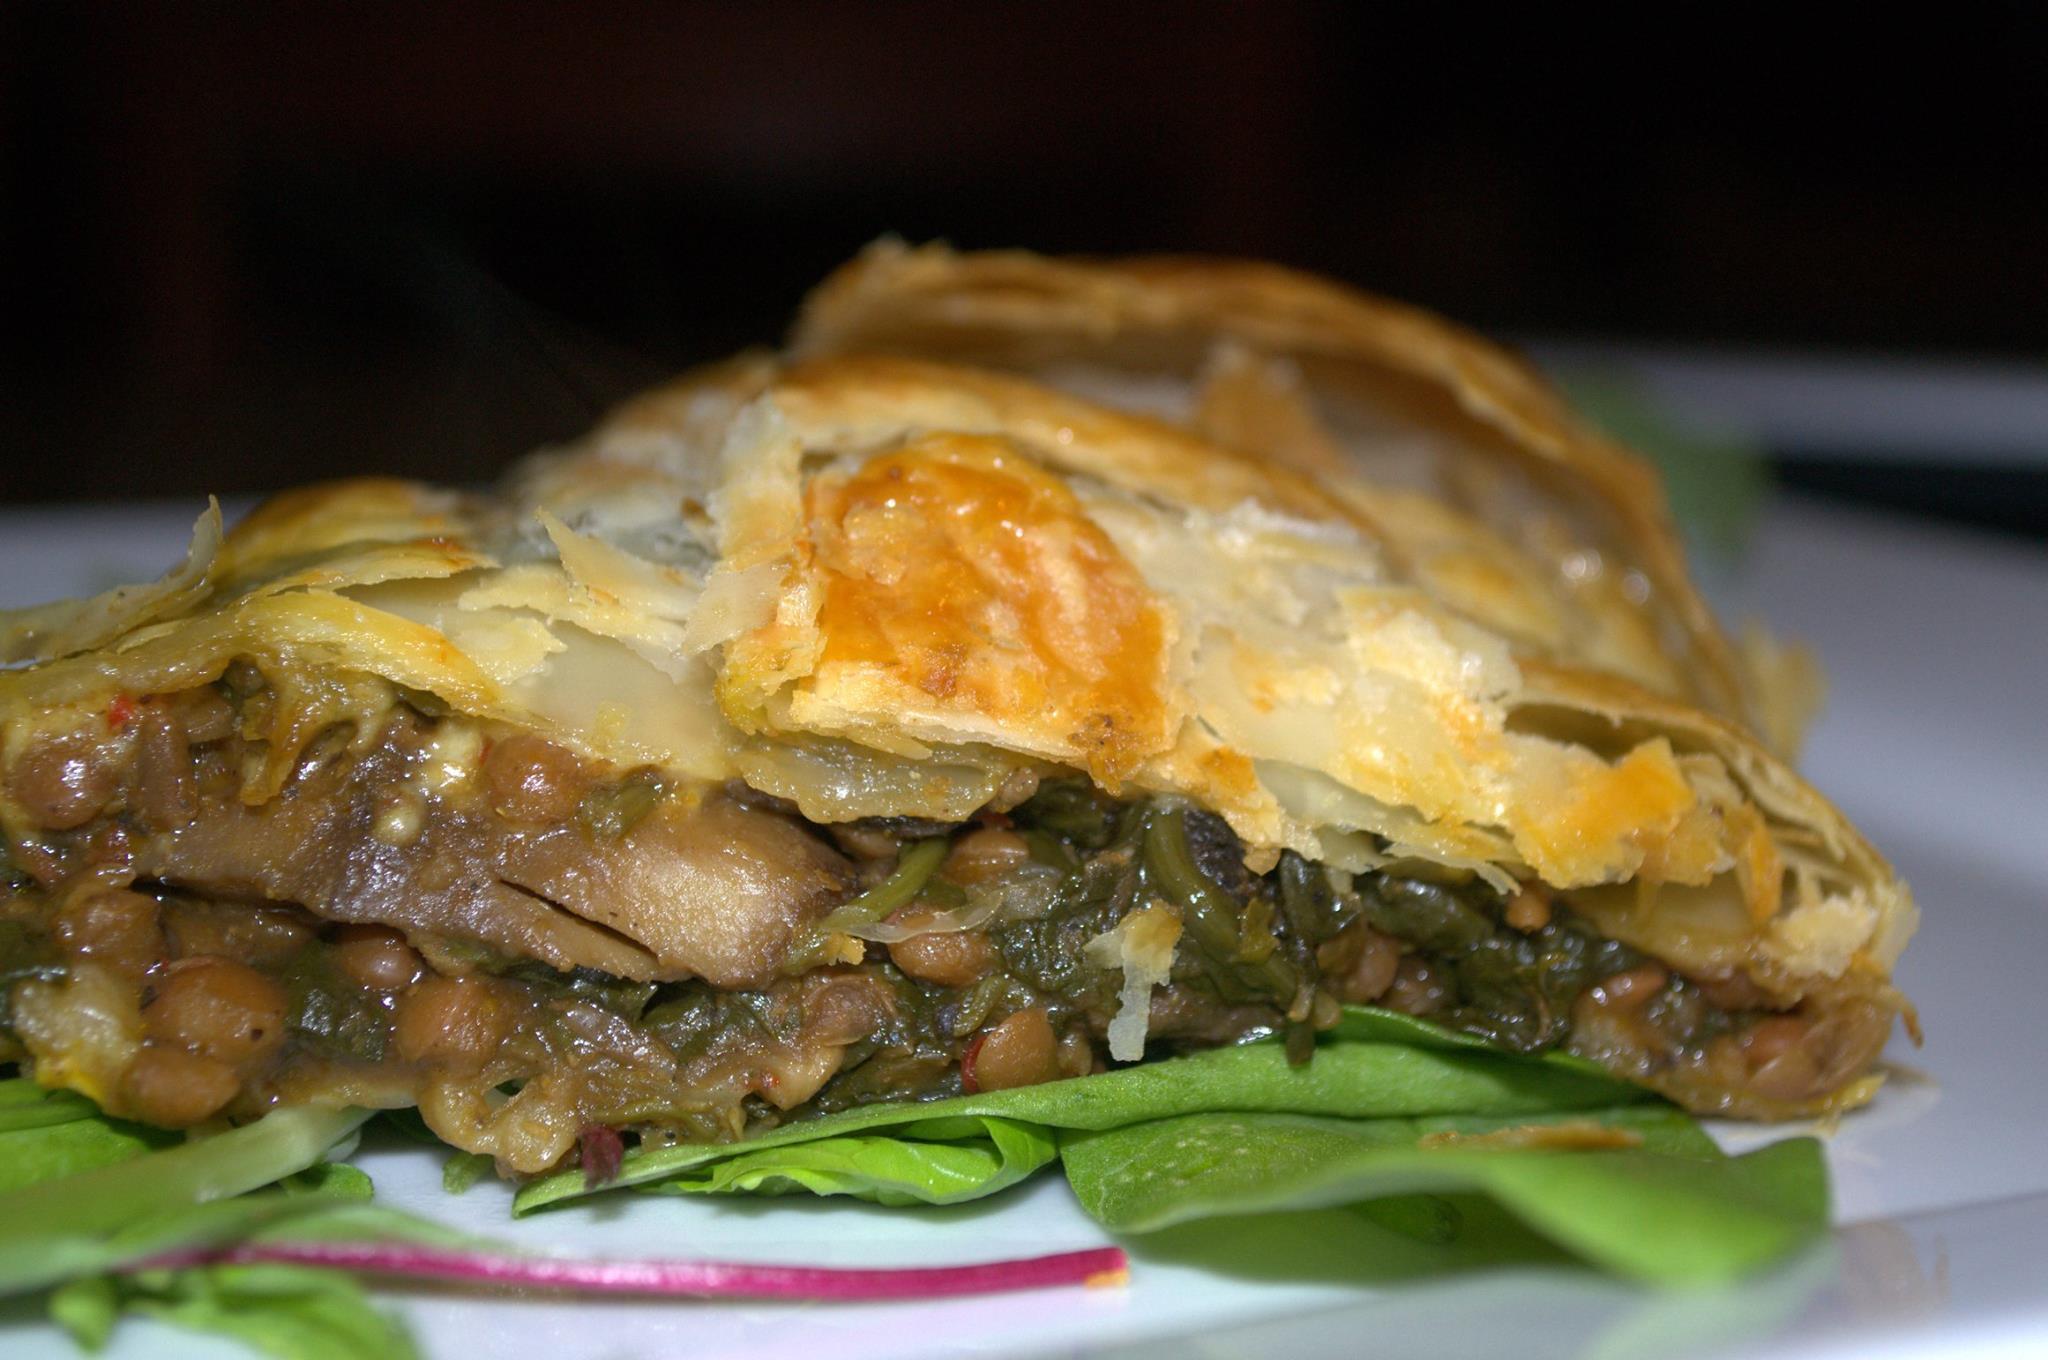 Spinach, Mushrooms and Lentils